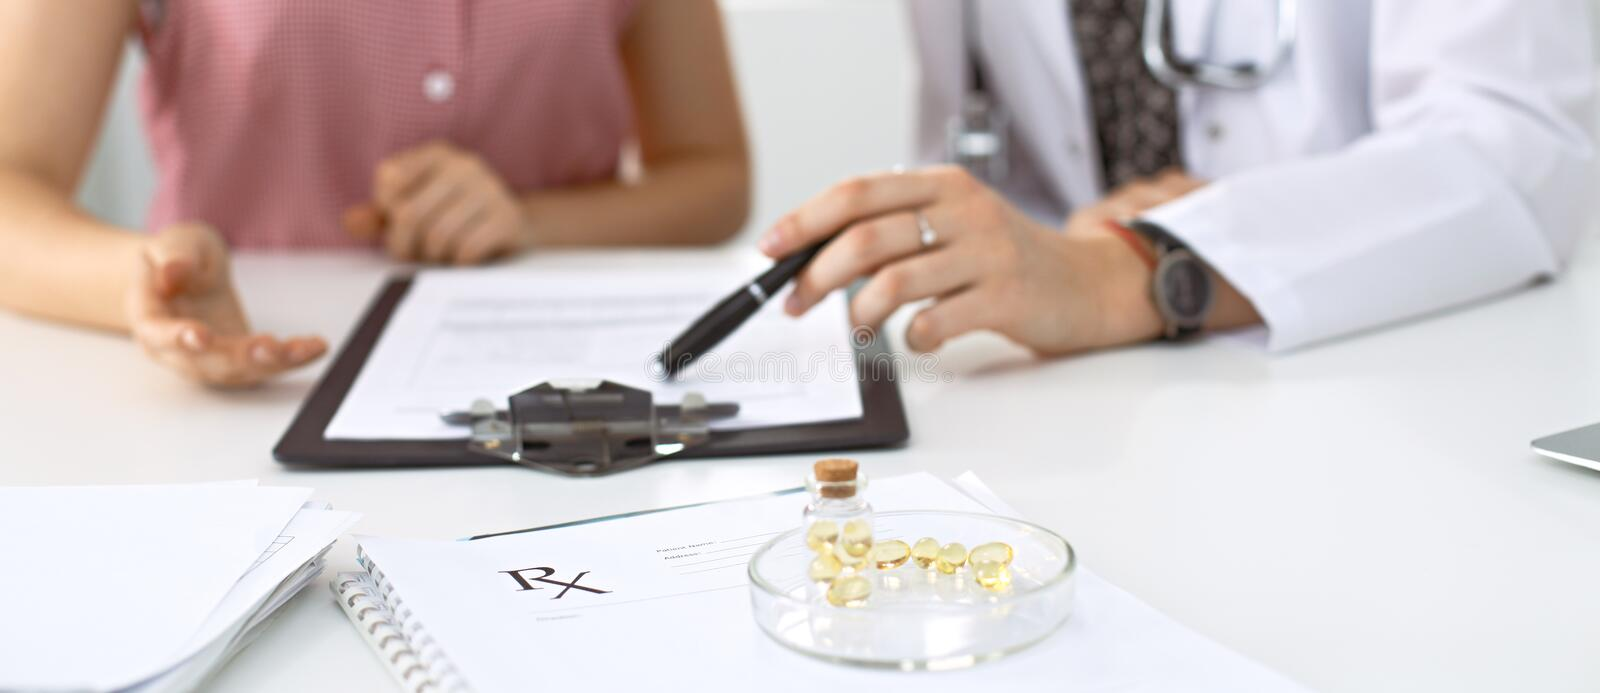 Medical prescription form, capsules and pills are lying against the background of a doctor and patient discussing health royalty free stock photos